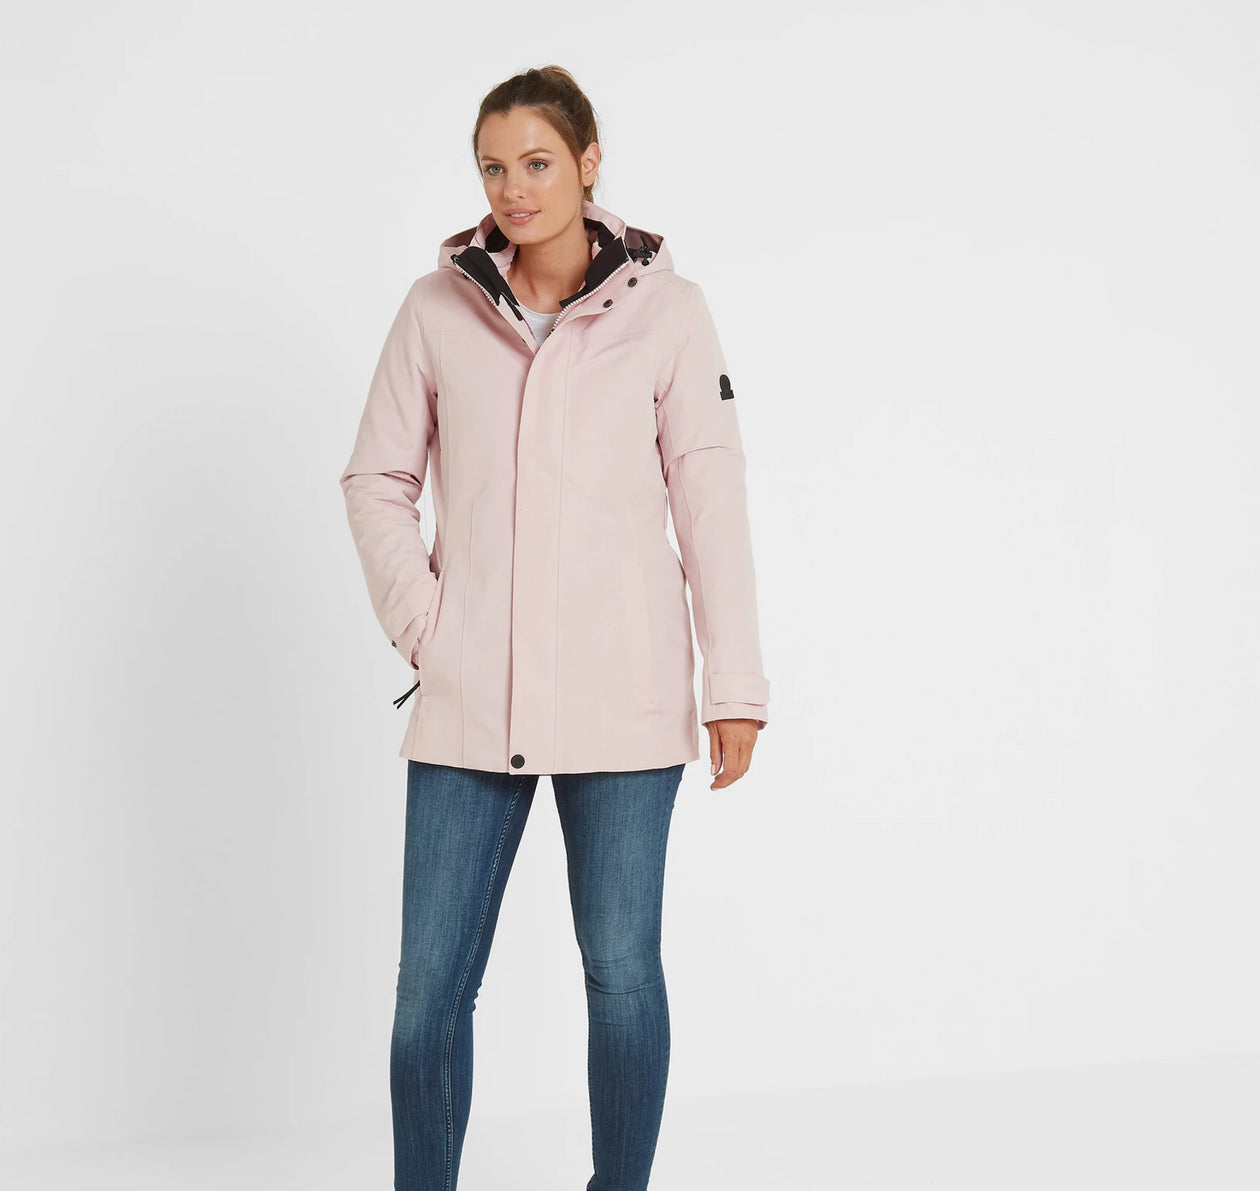 Ripley Womens Waterproof 3-In-1 Jacket - Rose Pink image 4